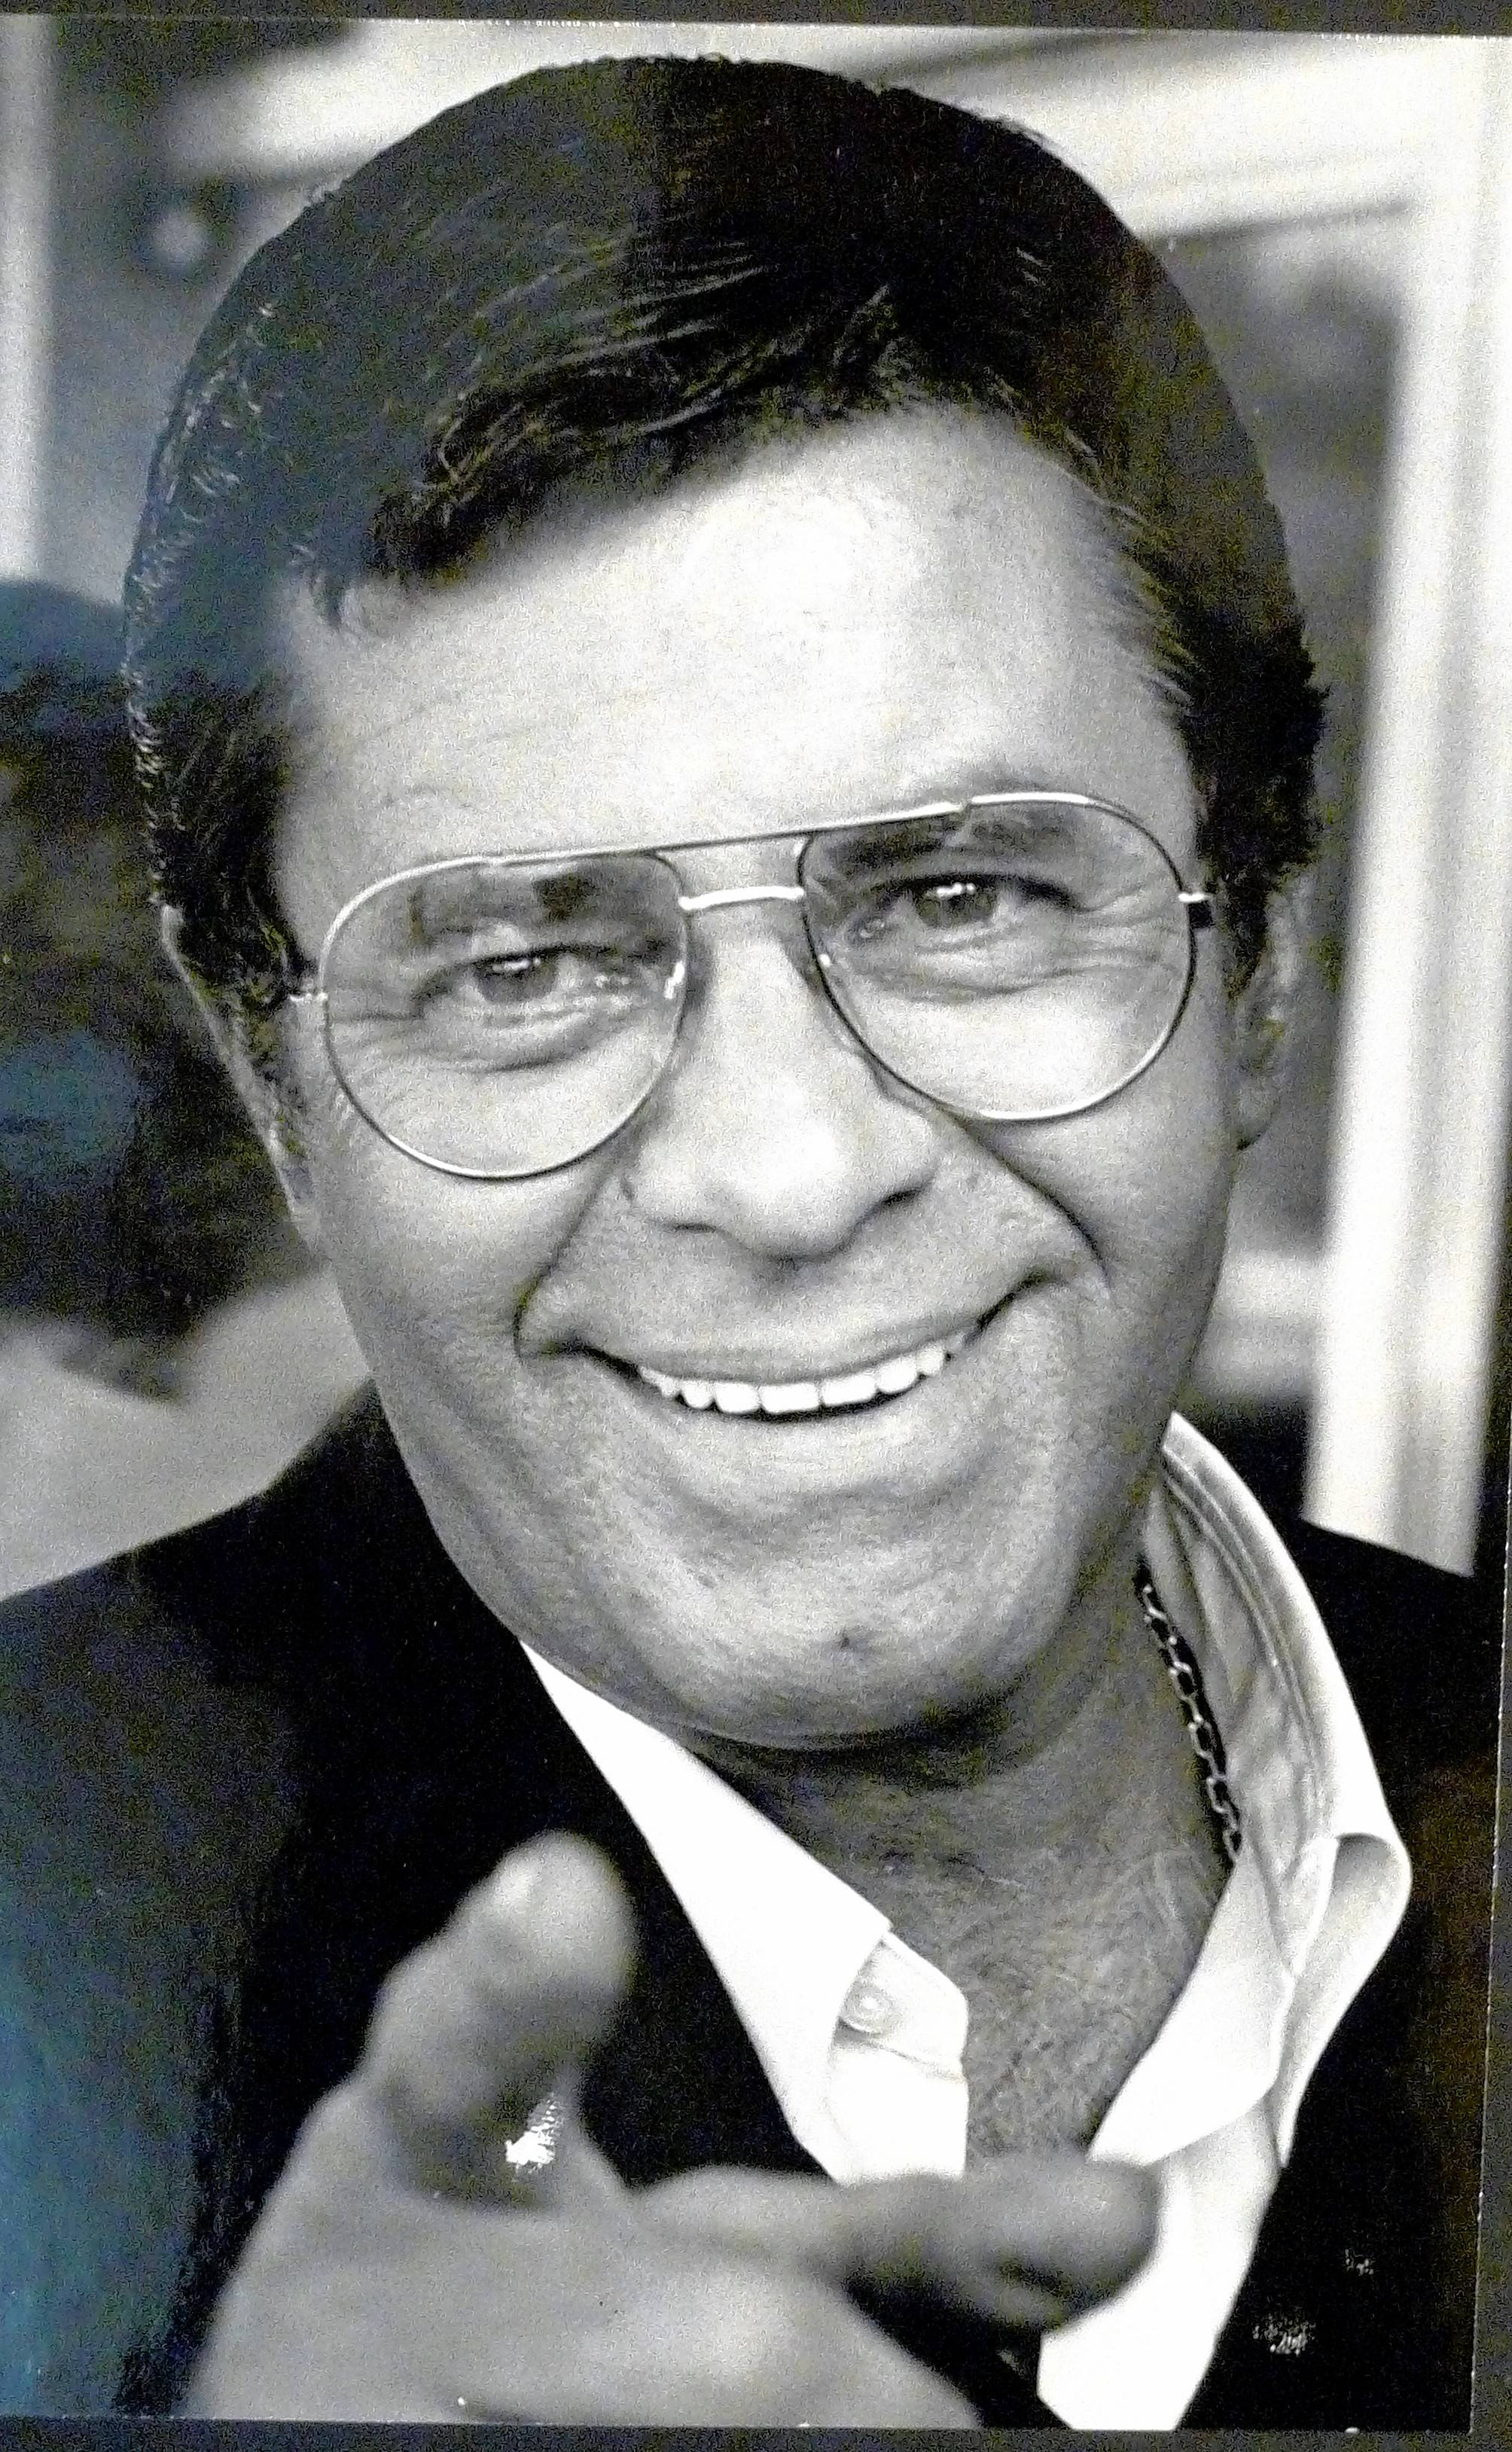 Jerry Lewis, then 56, photographed during his 1982 interview with Dann Gire at Chicago's Ritz Carlton Hotel.